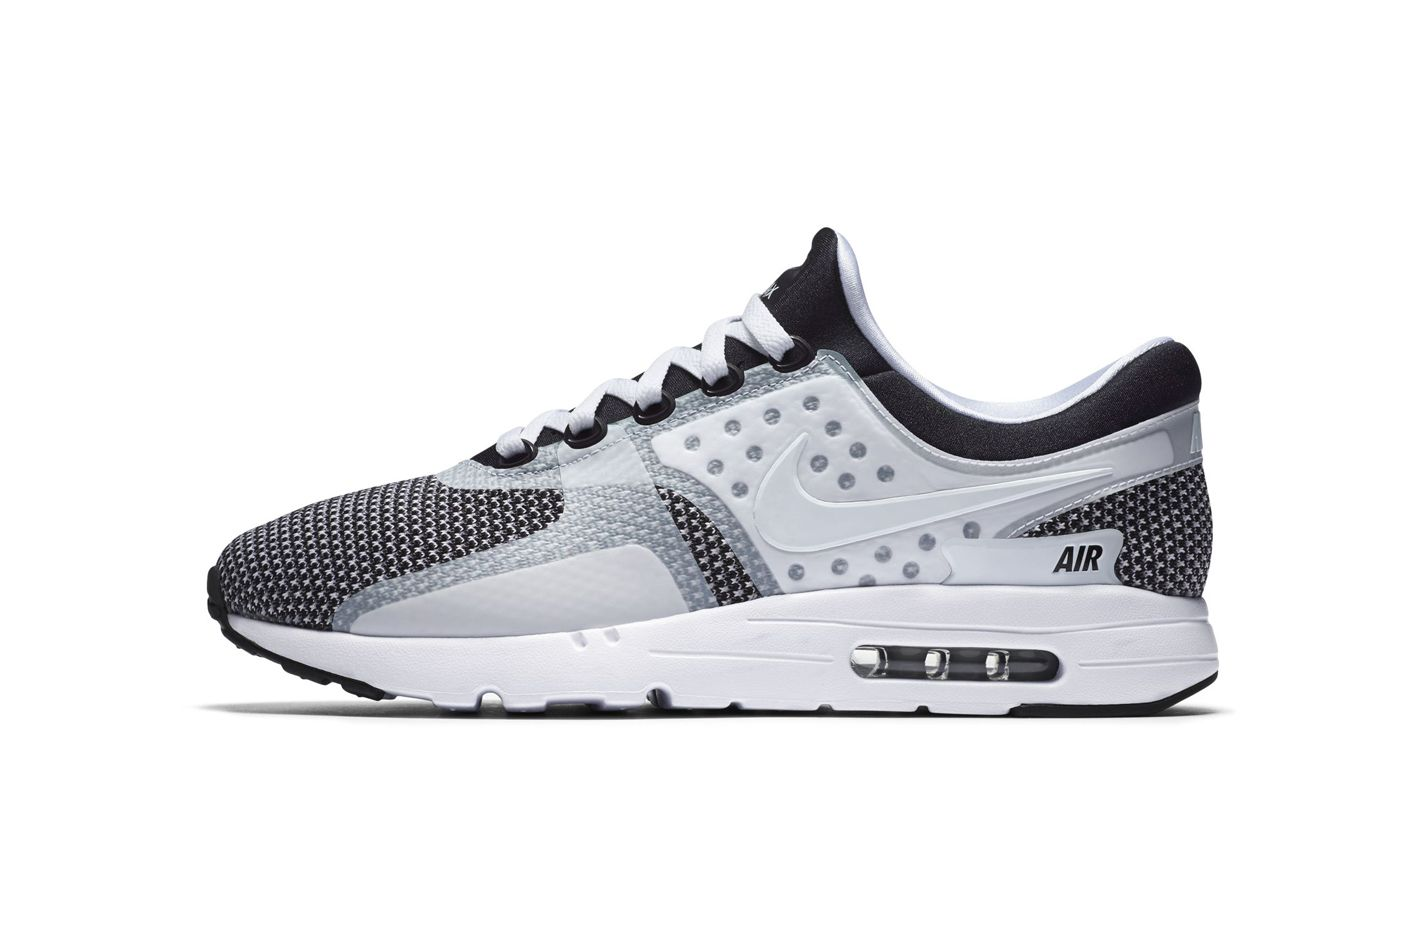 940a343fbe Black · Nike Is Dropping a Clean White/Black Colorway of the Air Max Zero